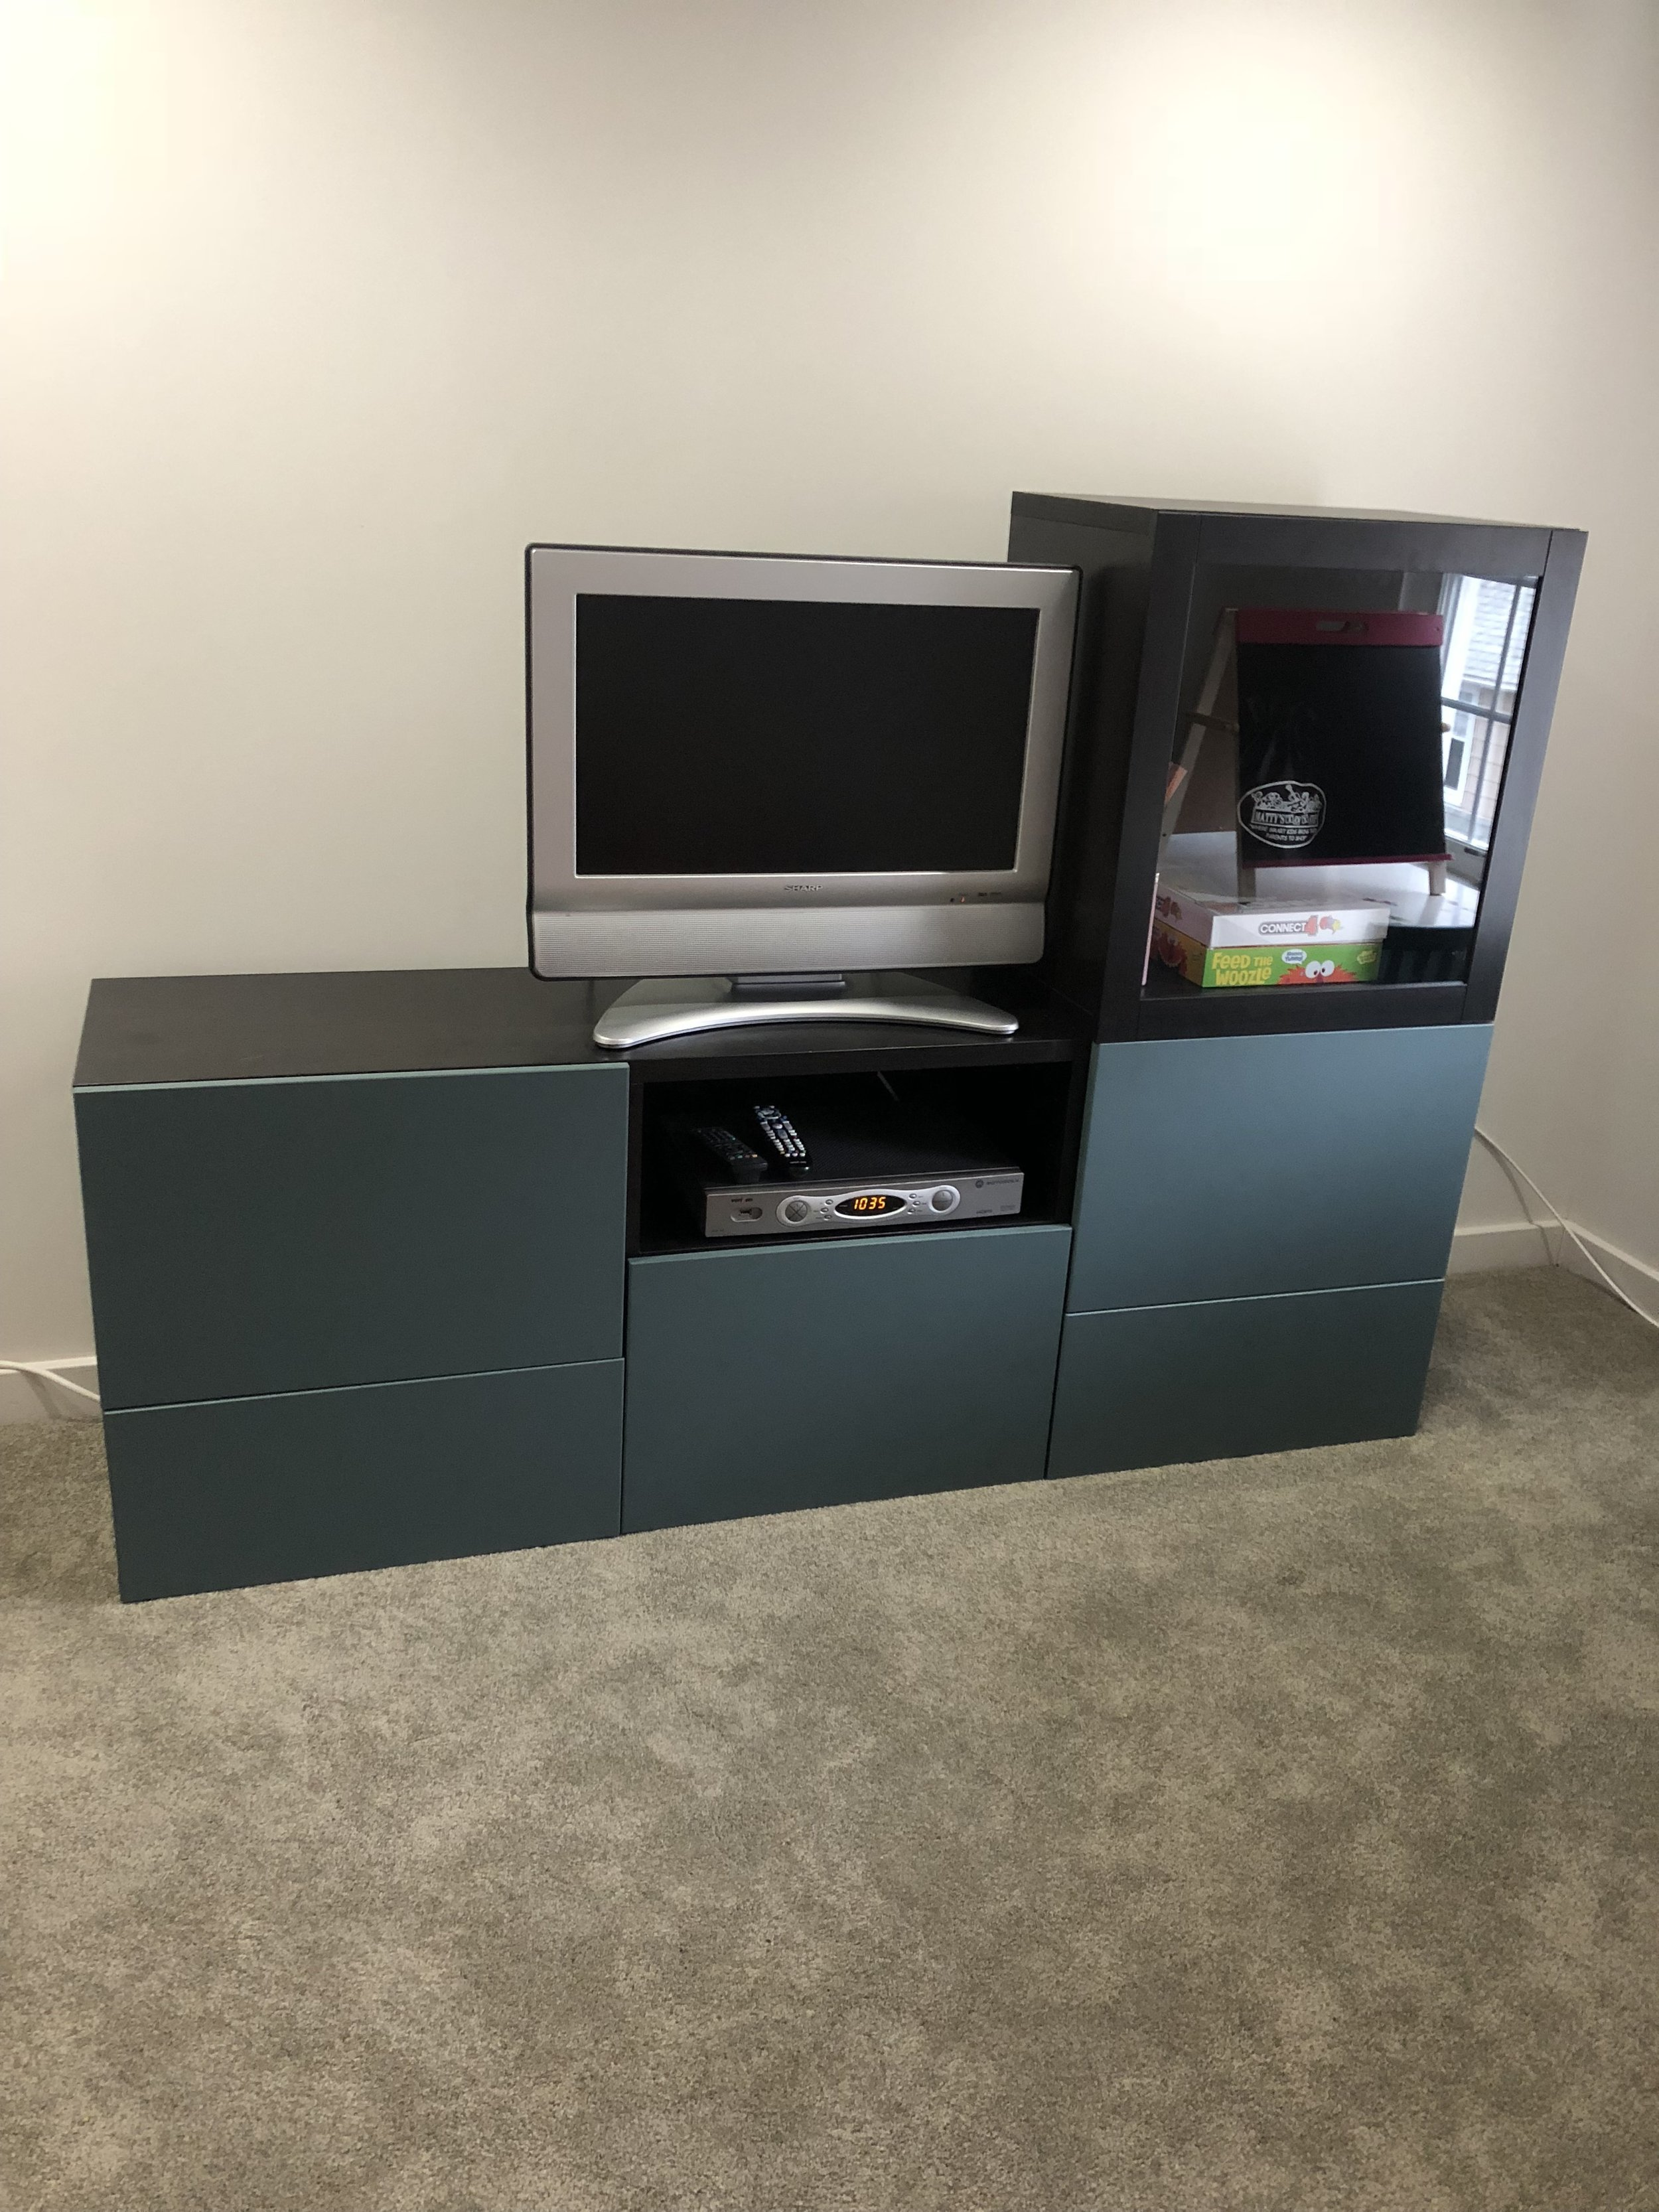 ENTERTAINMENT CENTER SOLUTIONS